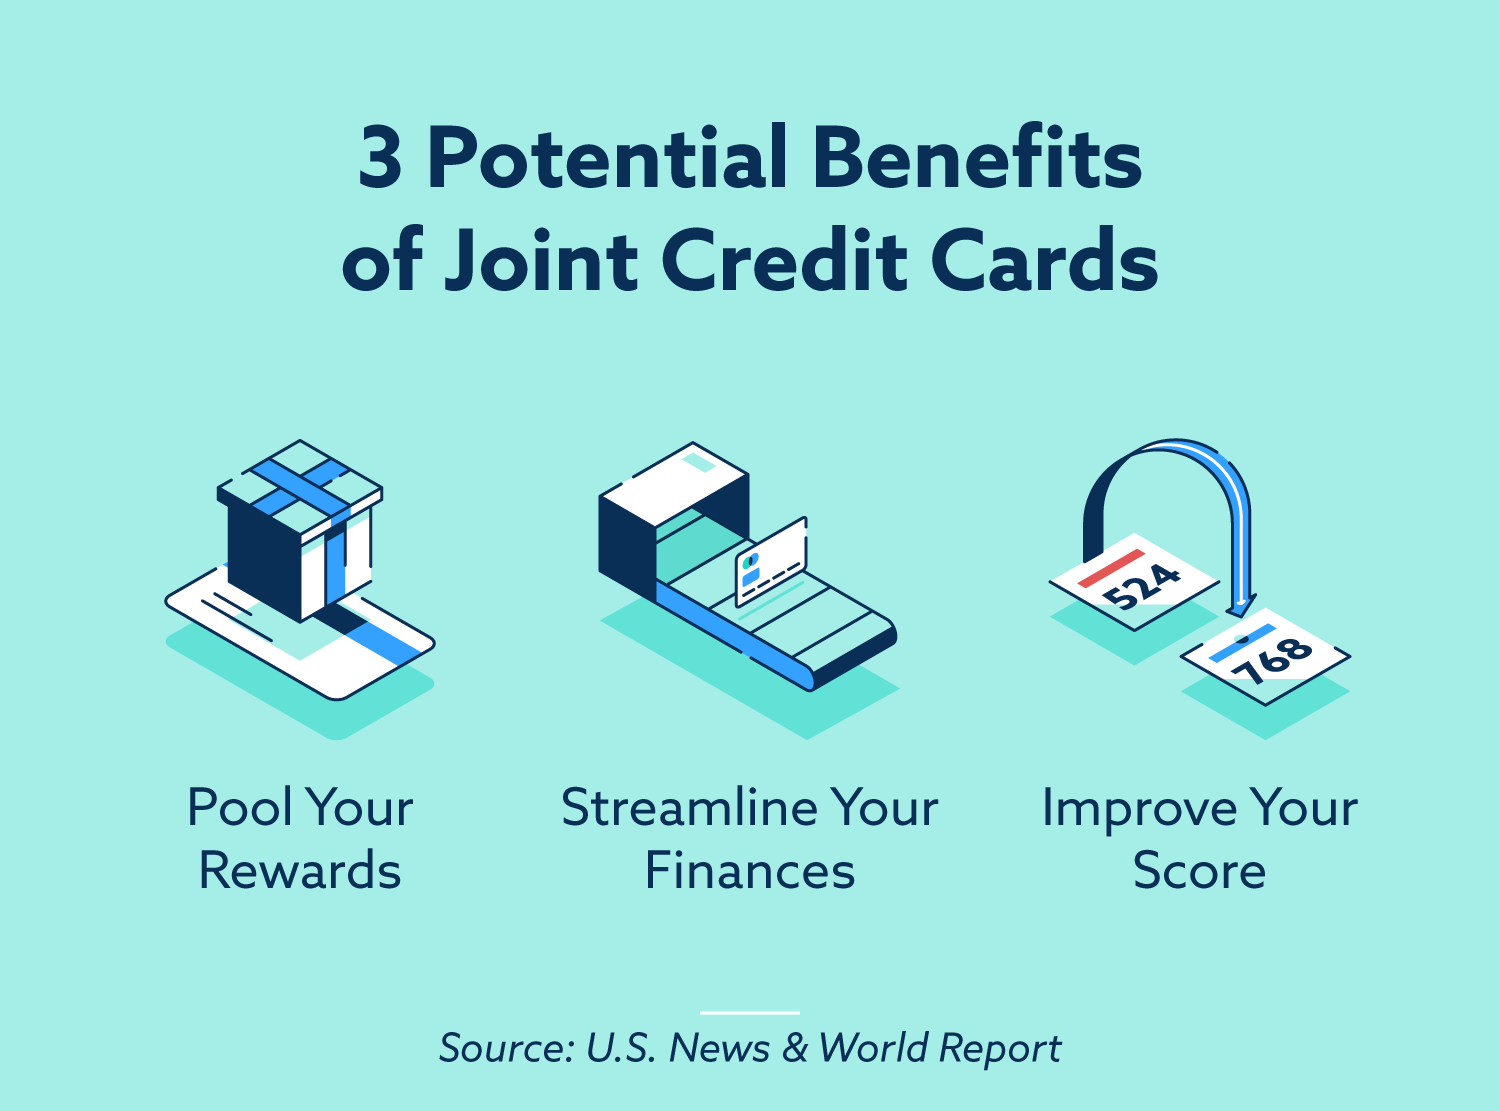 3 potential benefits of joint credit cards: pool your rewards, streamline your finances, improve your score.